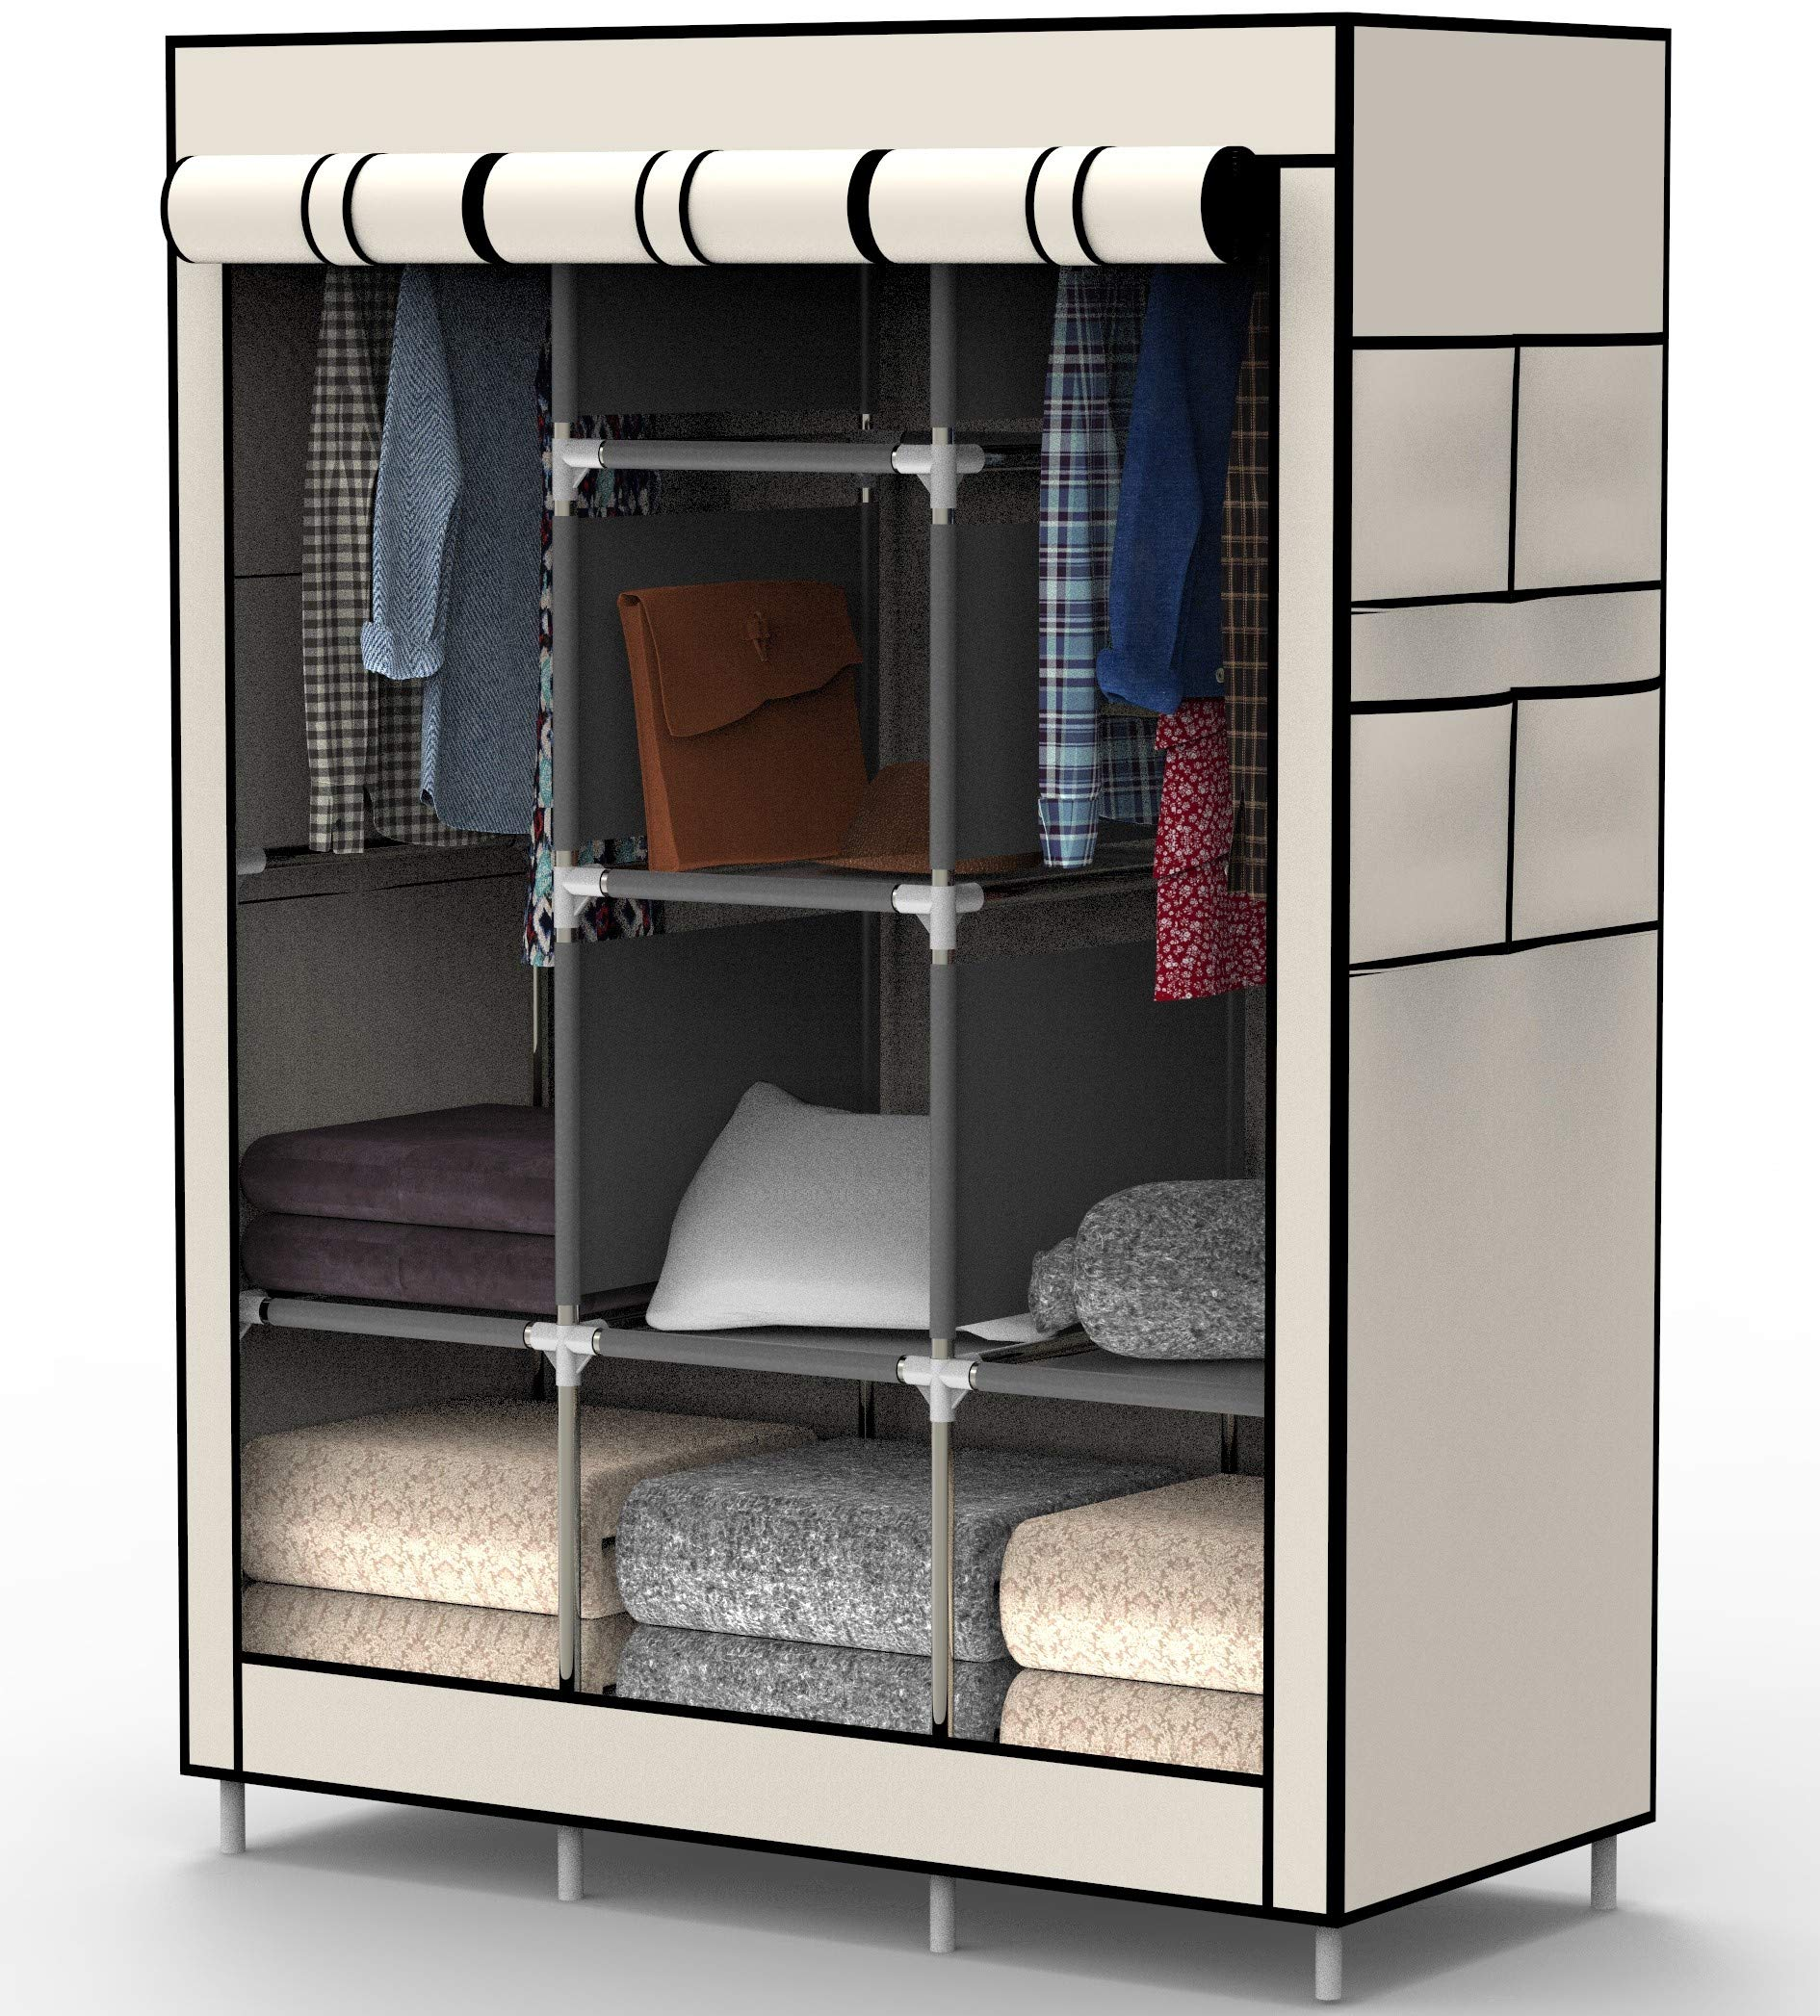 MYOUYA Clothes Closet Wardrobe - Bedroom Standing Closet Organizer for Clothing, Shoes and Accessories, 6 Cubes and 2 Hanging Sections (Beige)